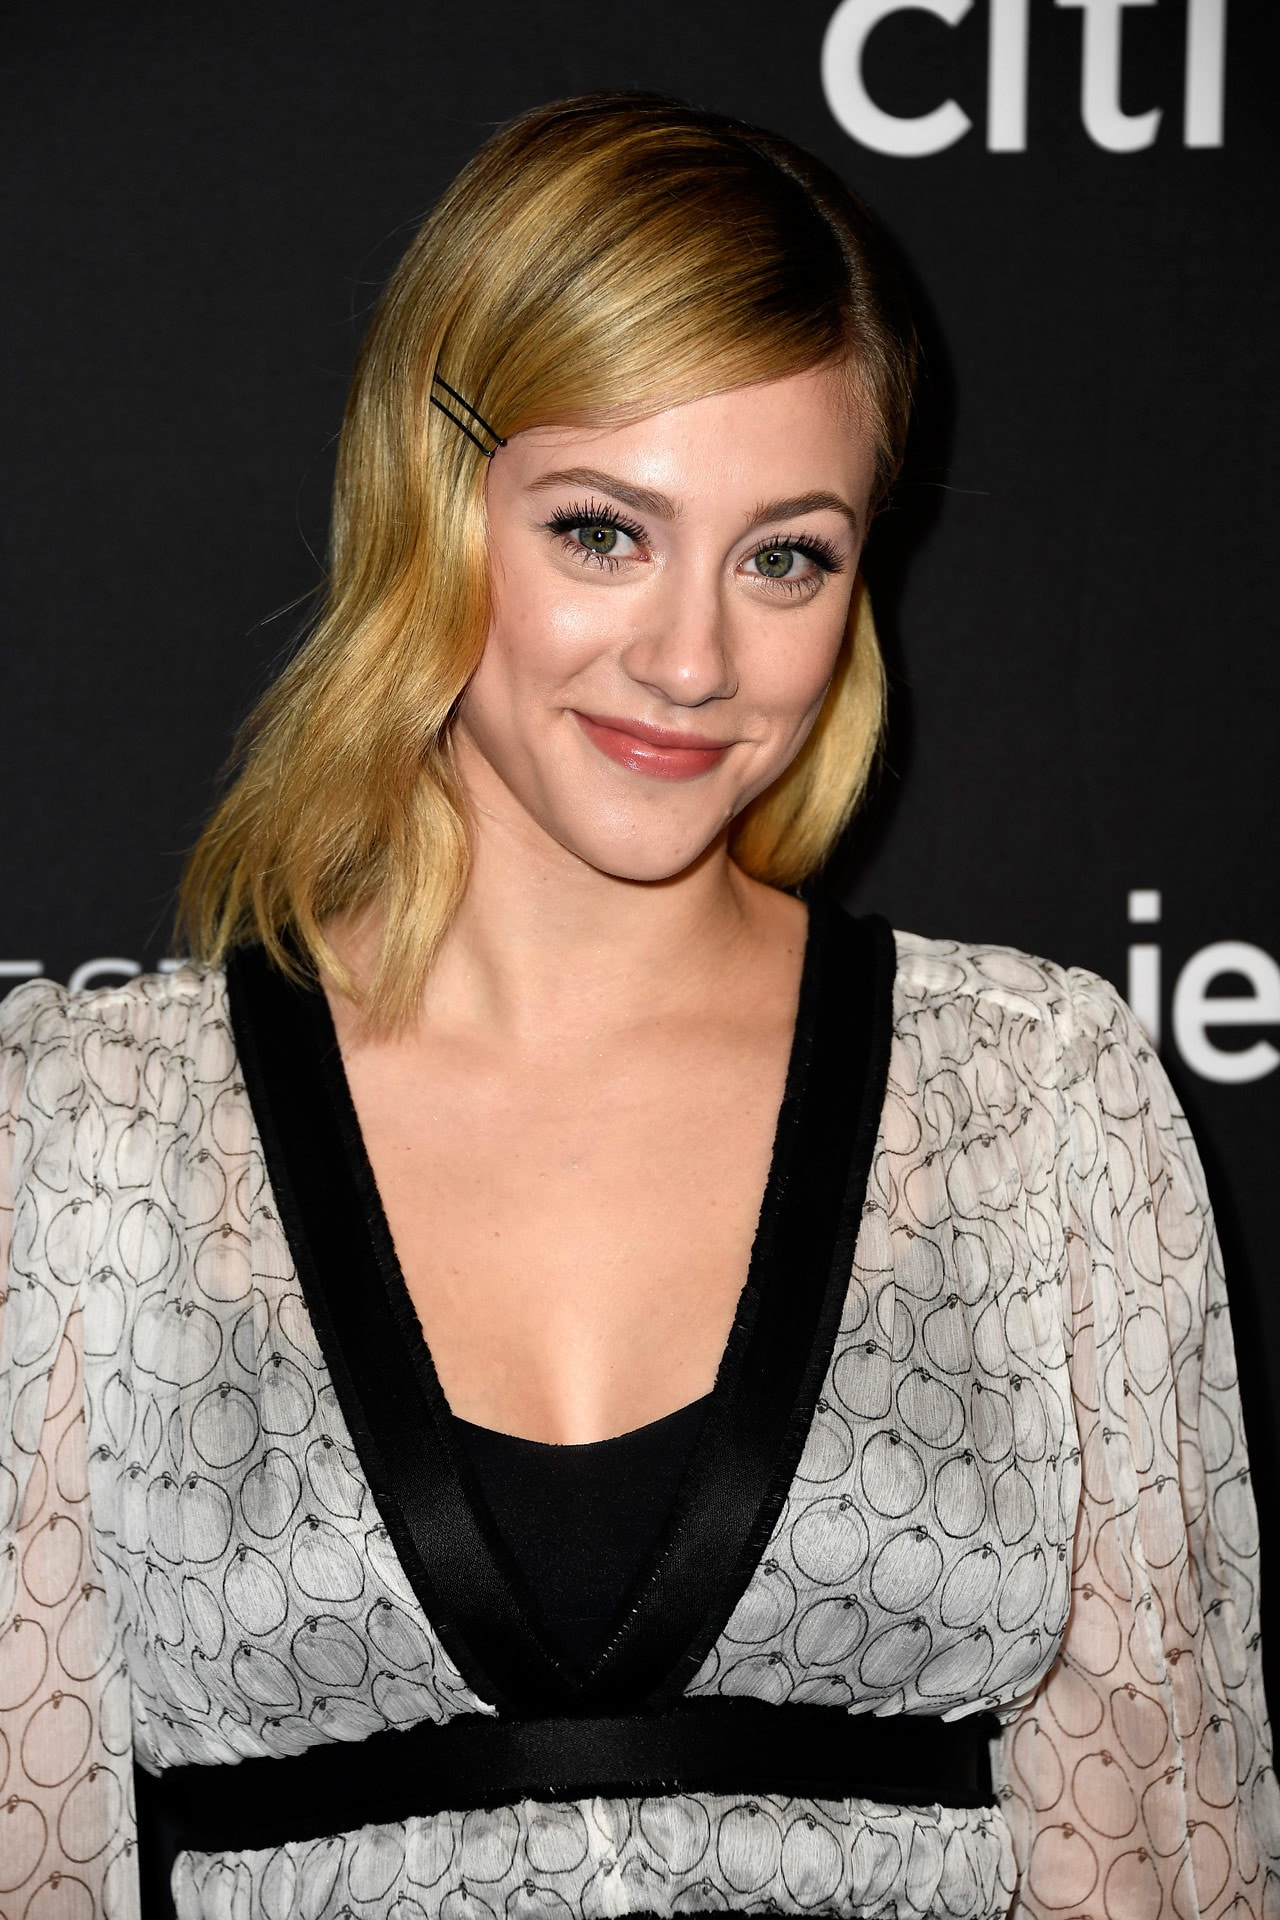 Lili Reinhart isn't afraid to show off her cystic acne